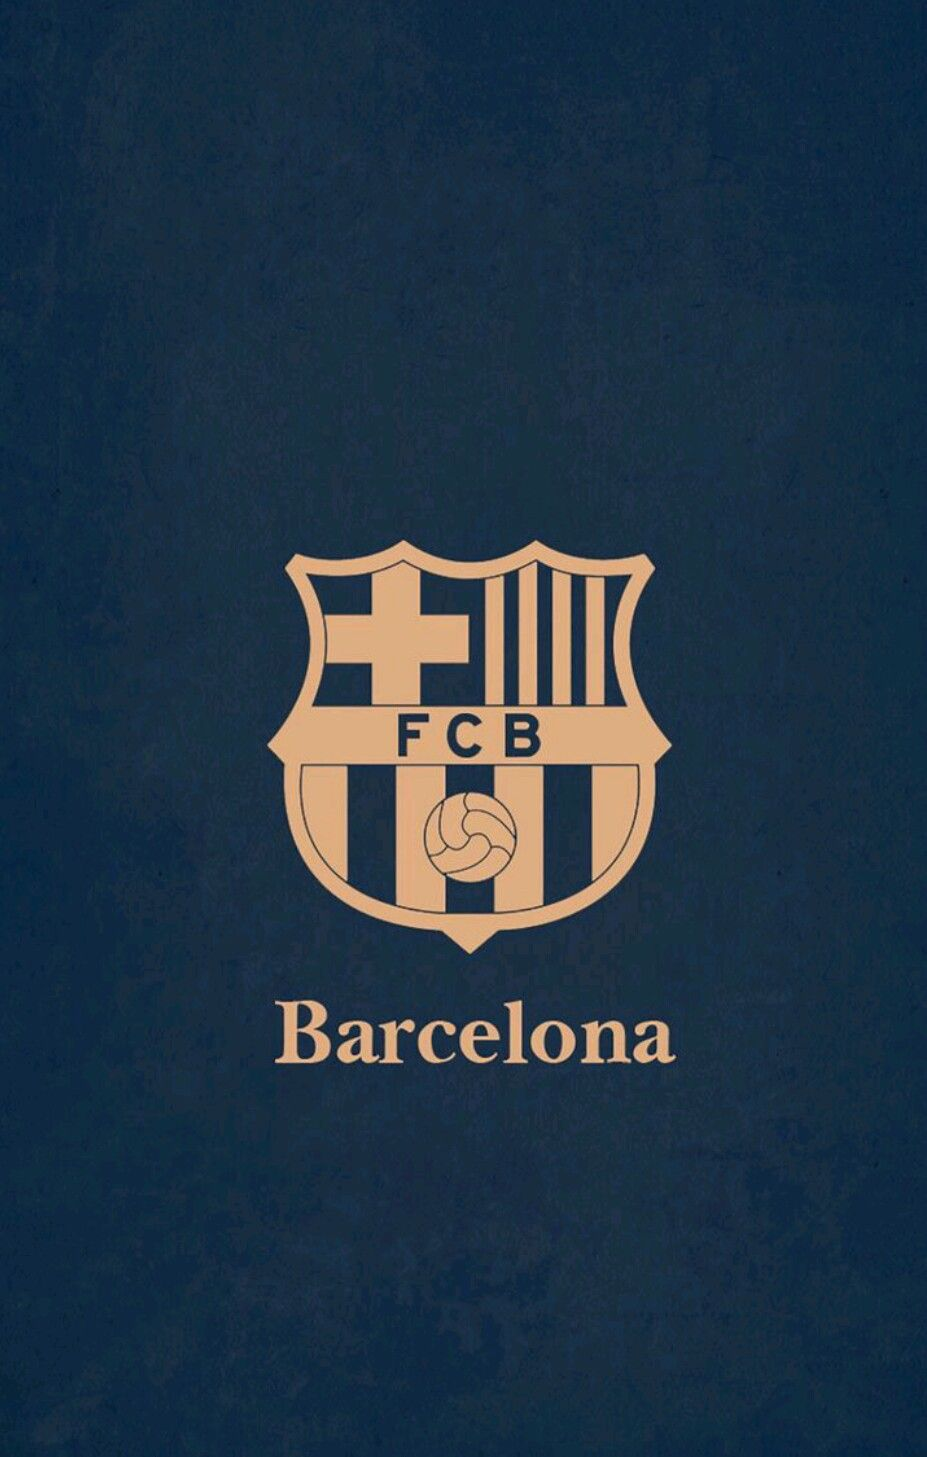 Wallpaper iphone barcelona - Awesome We Re Proud You Feel Like It Lets Know If You Get